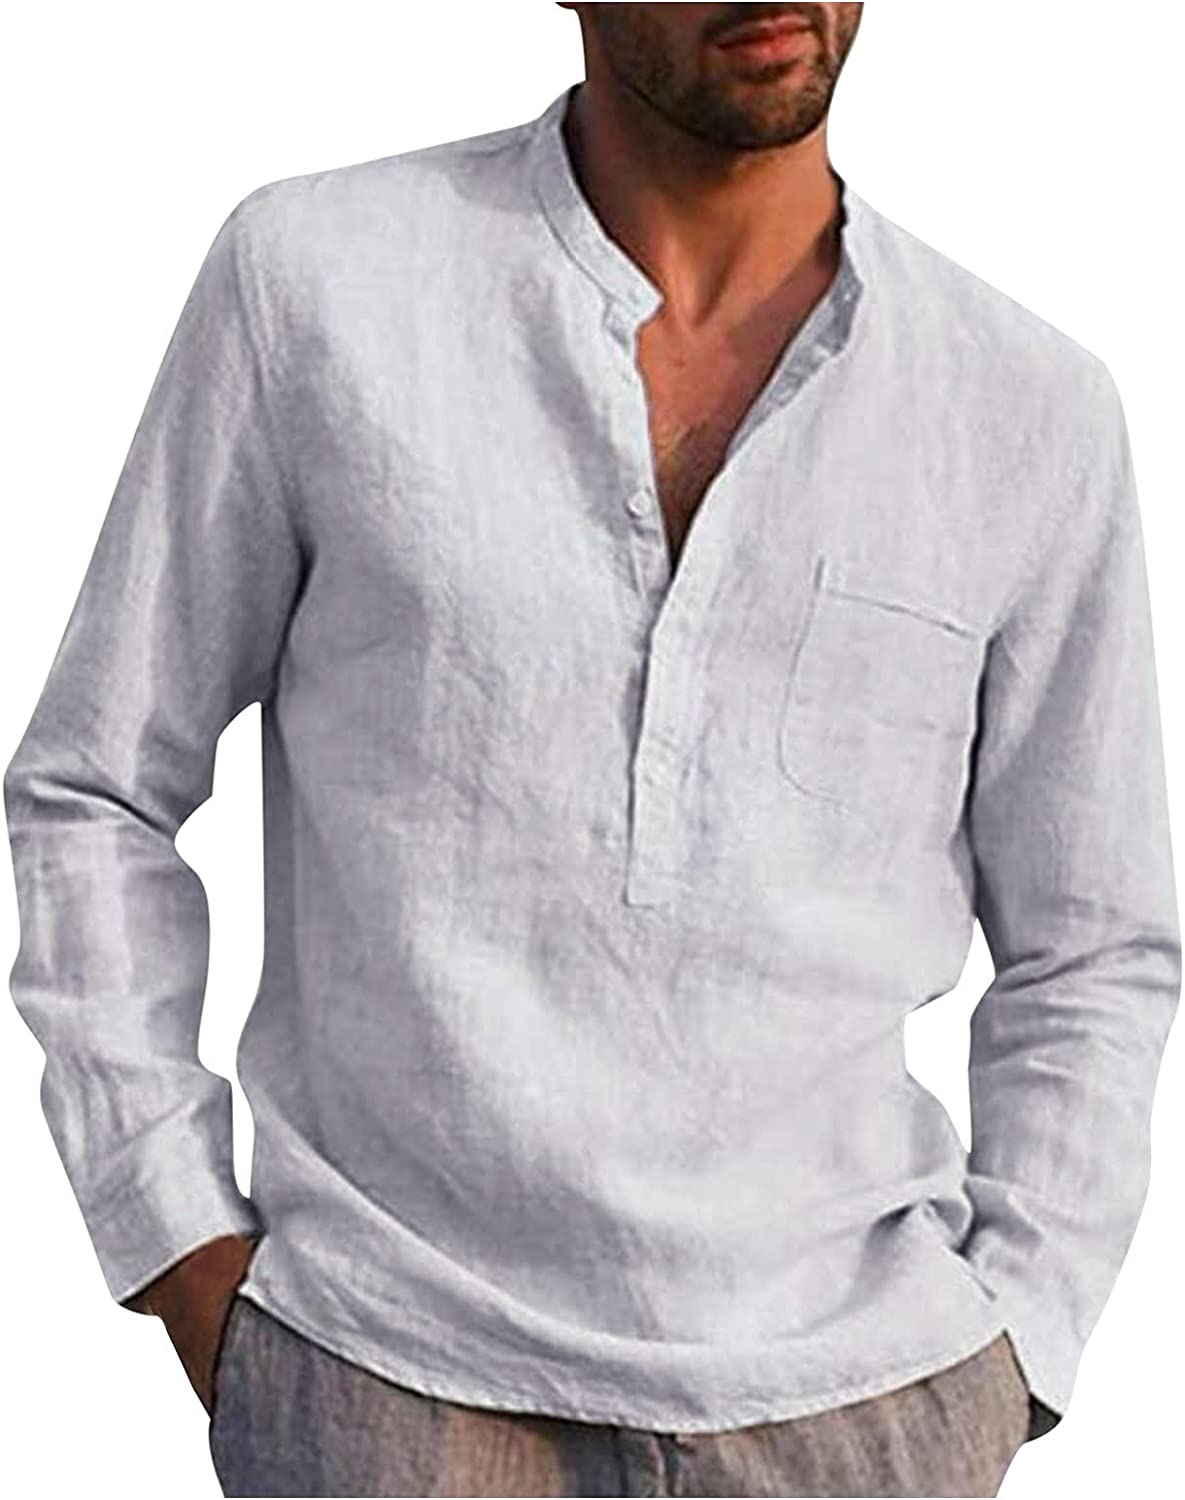 WOCACHI Men's Casual Shirts, 2021 Button-up Henley Front Placket Long Sleeve Cotton Linen Tops Tshirts with Pocket